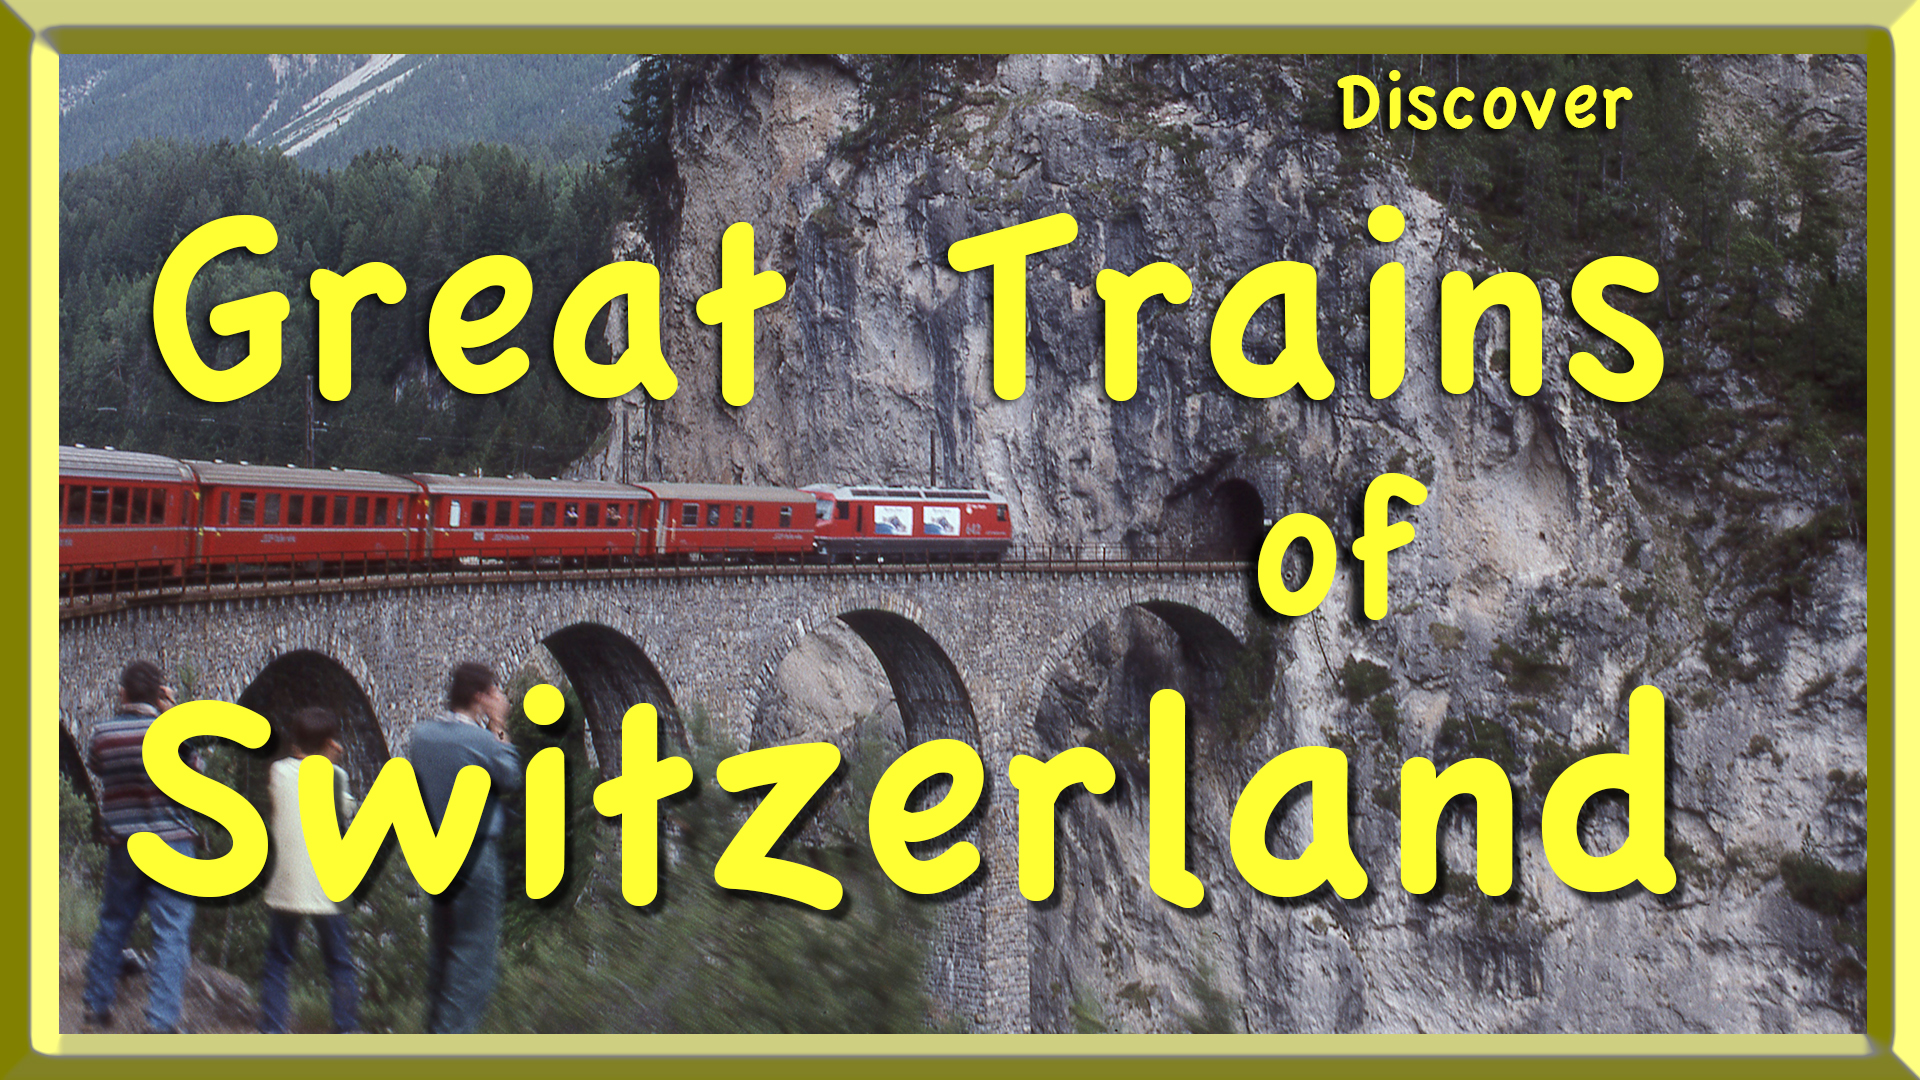 Discover Great Trains of Switzerland